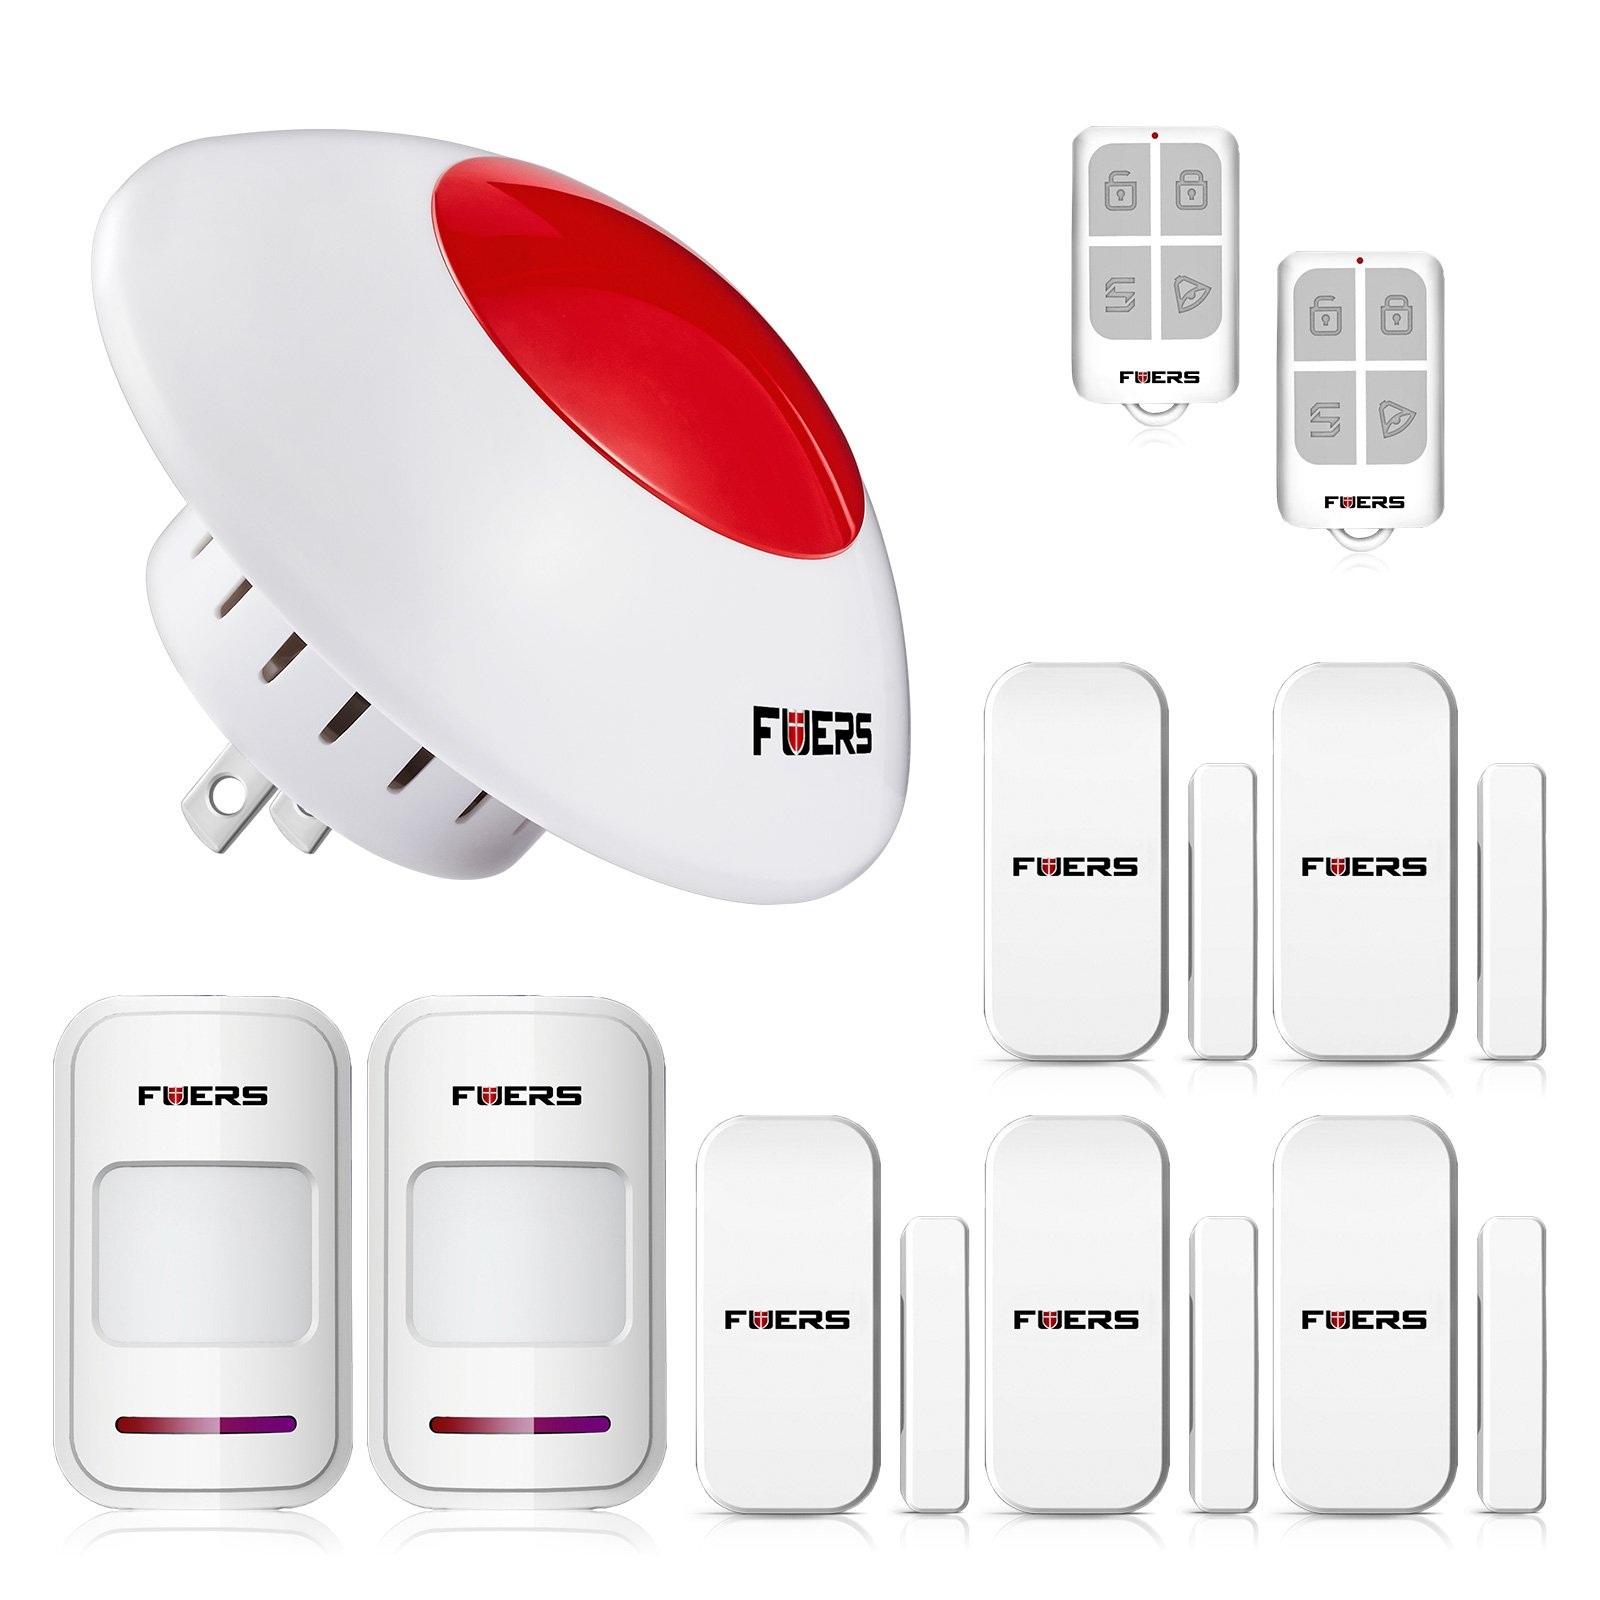 Fuers Standalone Home Office & Shop Security Alarm System Kit,Wireless Indoor Strobe Flashing Siren with Remote Key Fob and Door Contact Sensor by Fuers